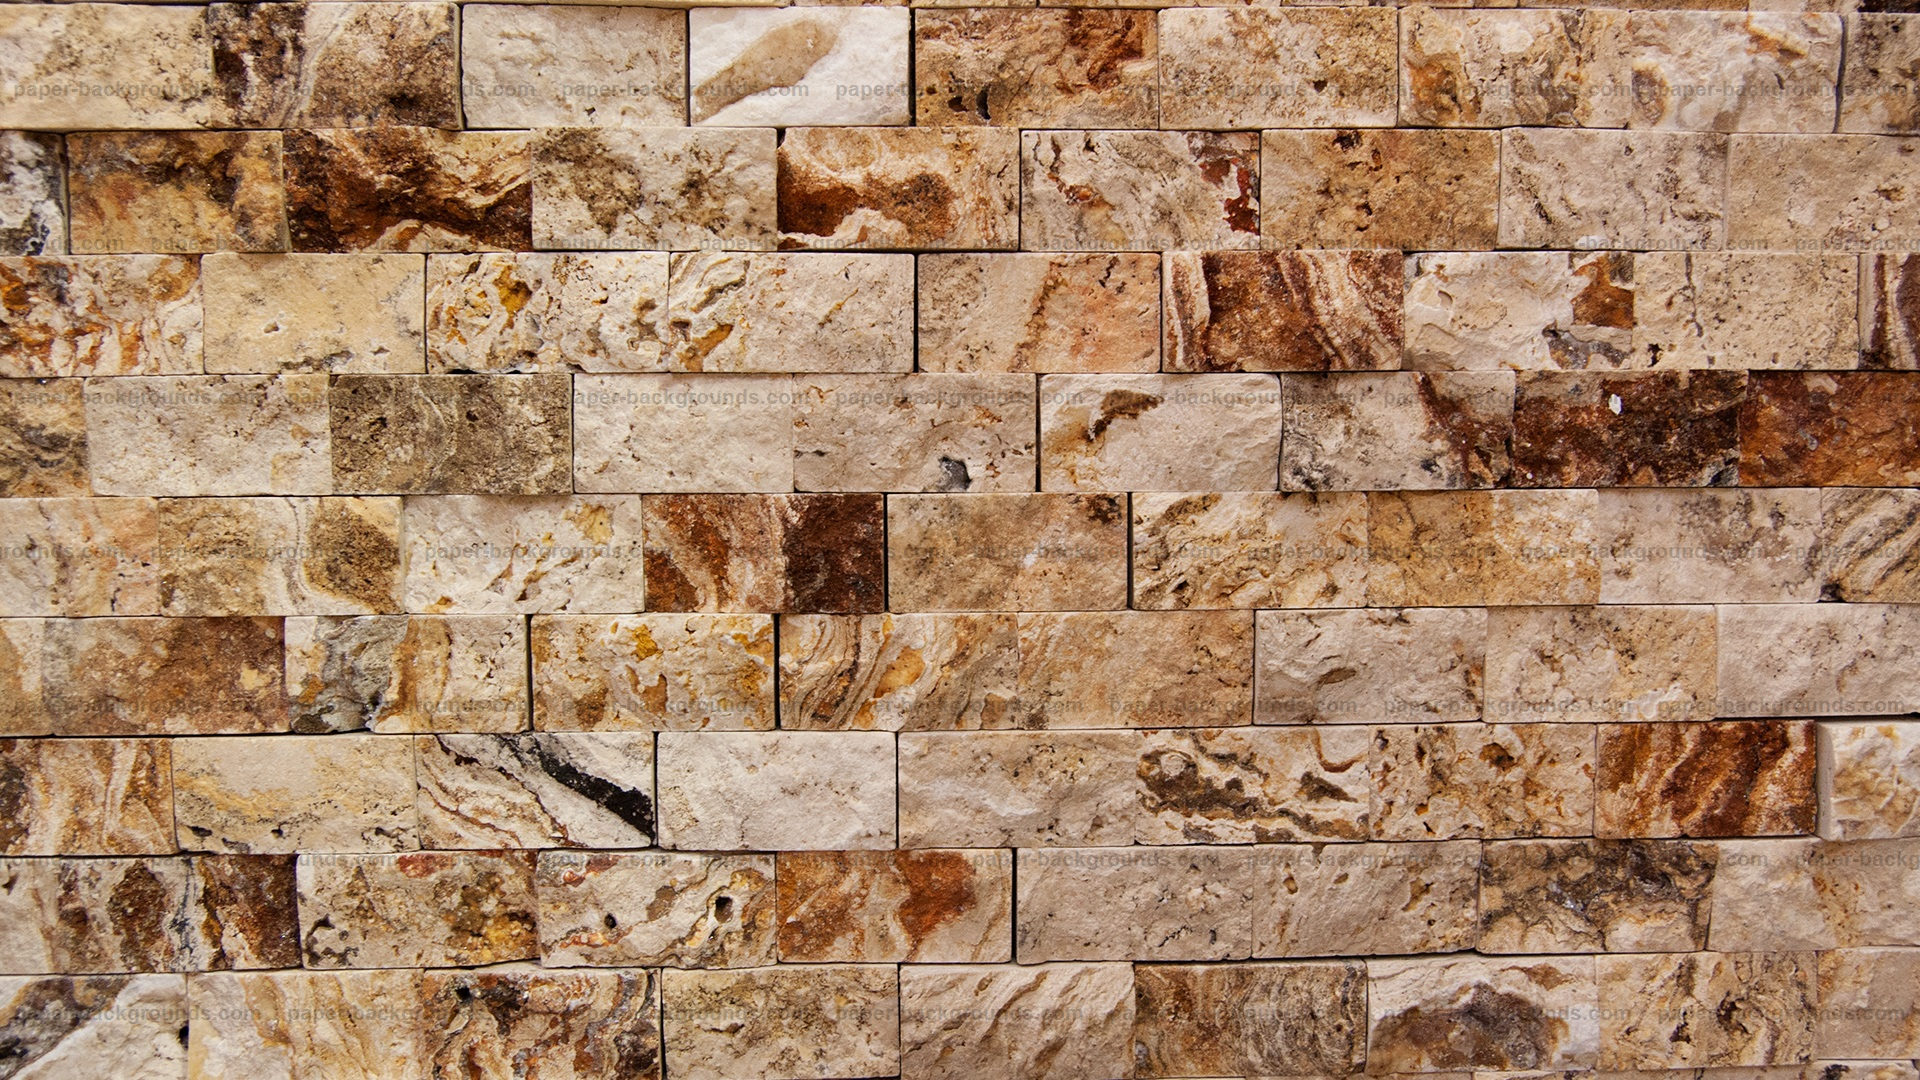 Rough Marble Brick Wall Texture Hd - Brown Marble Wall Texture , HD Wallpaper & Backgrounds